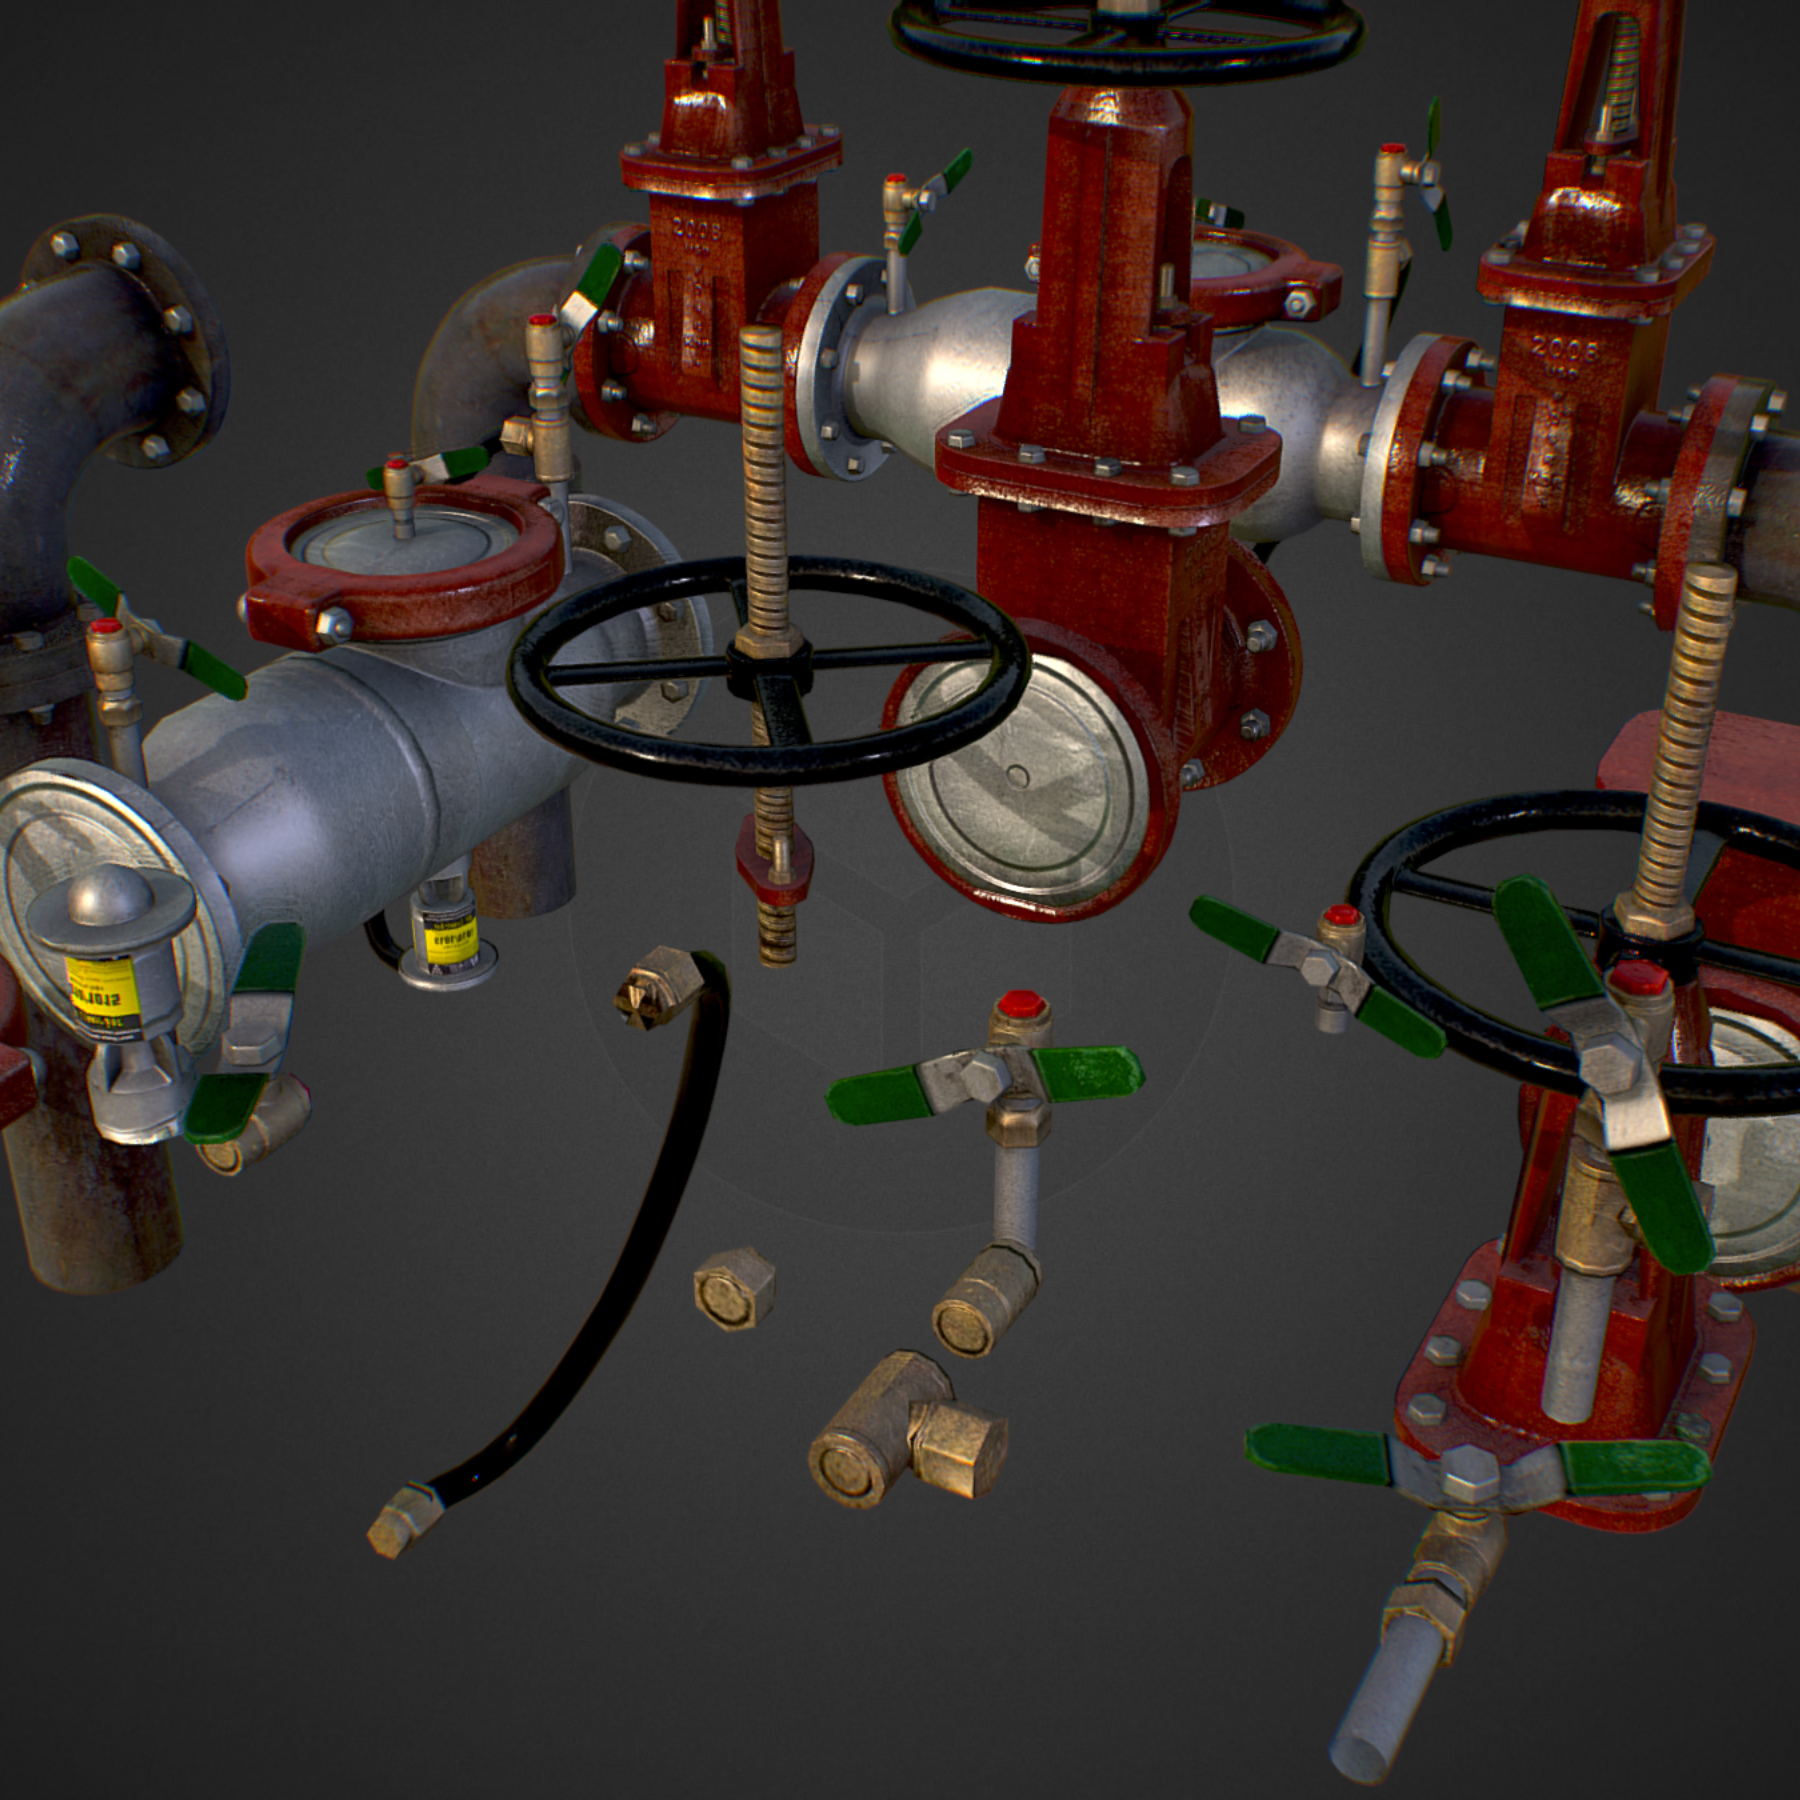 low poly game backflow water pipe constructor 3d model max  fbx ma mb tga targa icb vda vst pix obj 272469